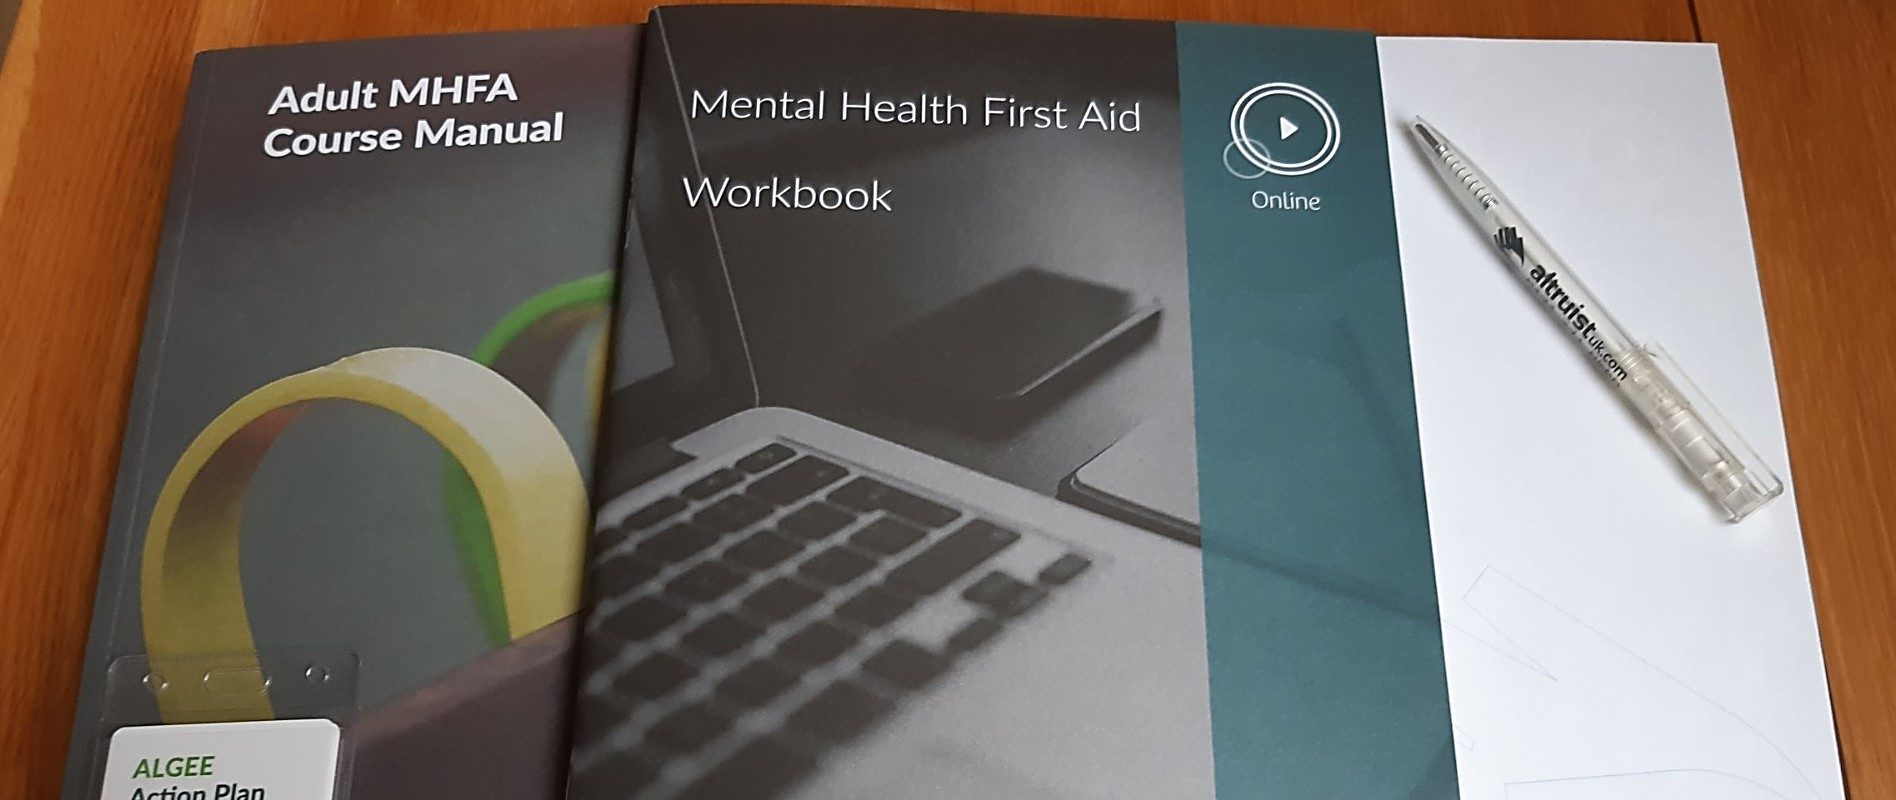 WEBINAR: Protect Your Mental Health at Work